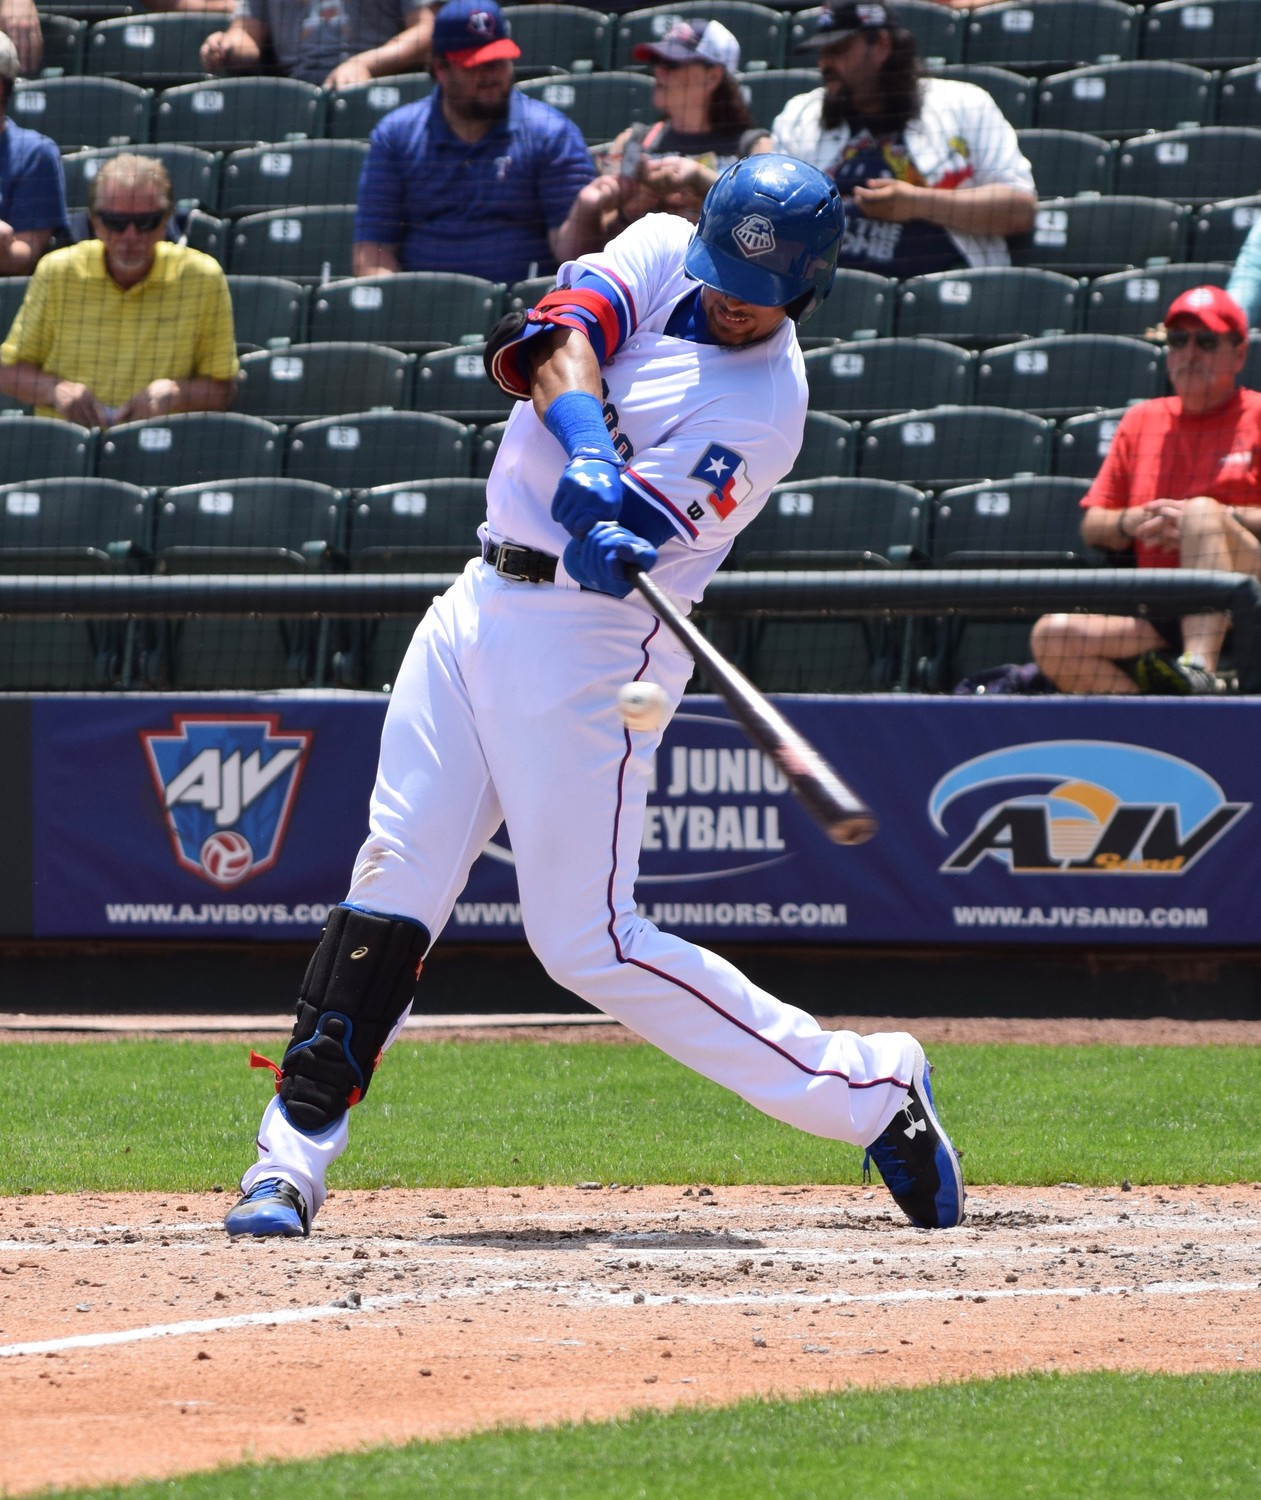 Ronald Guzman hit .298 with 12 home runs for the Round Rock Express last season, his first full season in Triple-A.